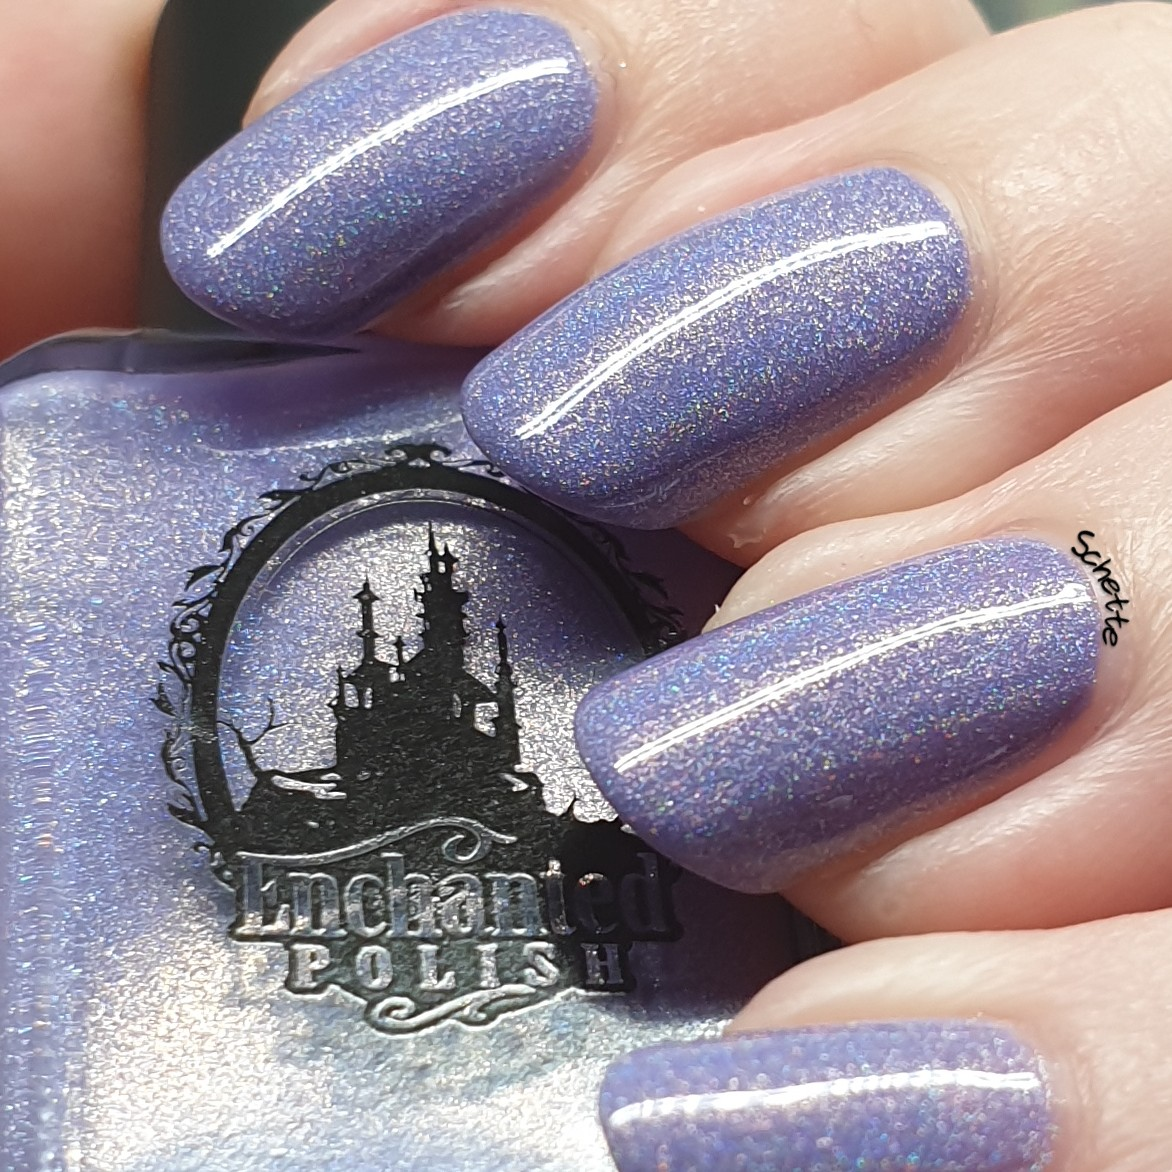 Enchanted Polish - Sugar Coated